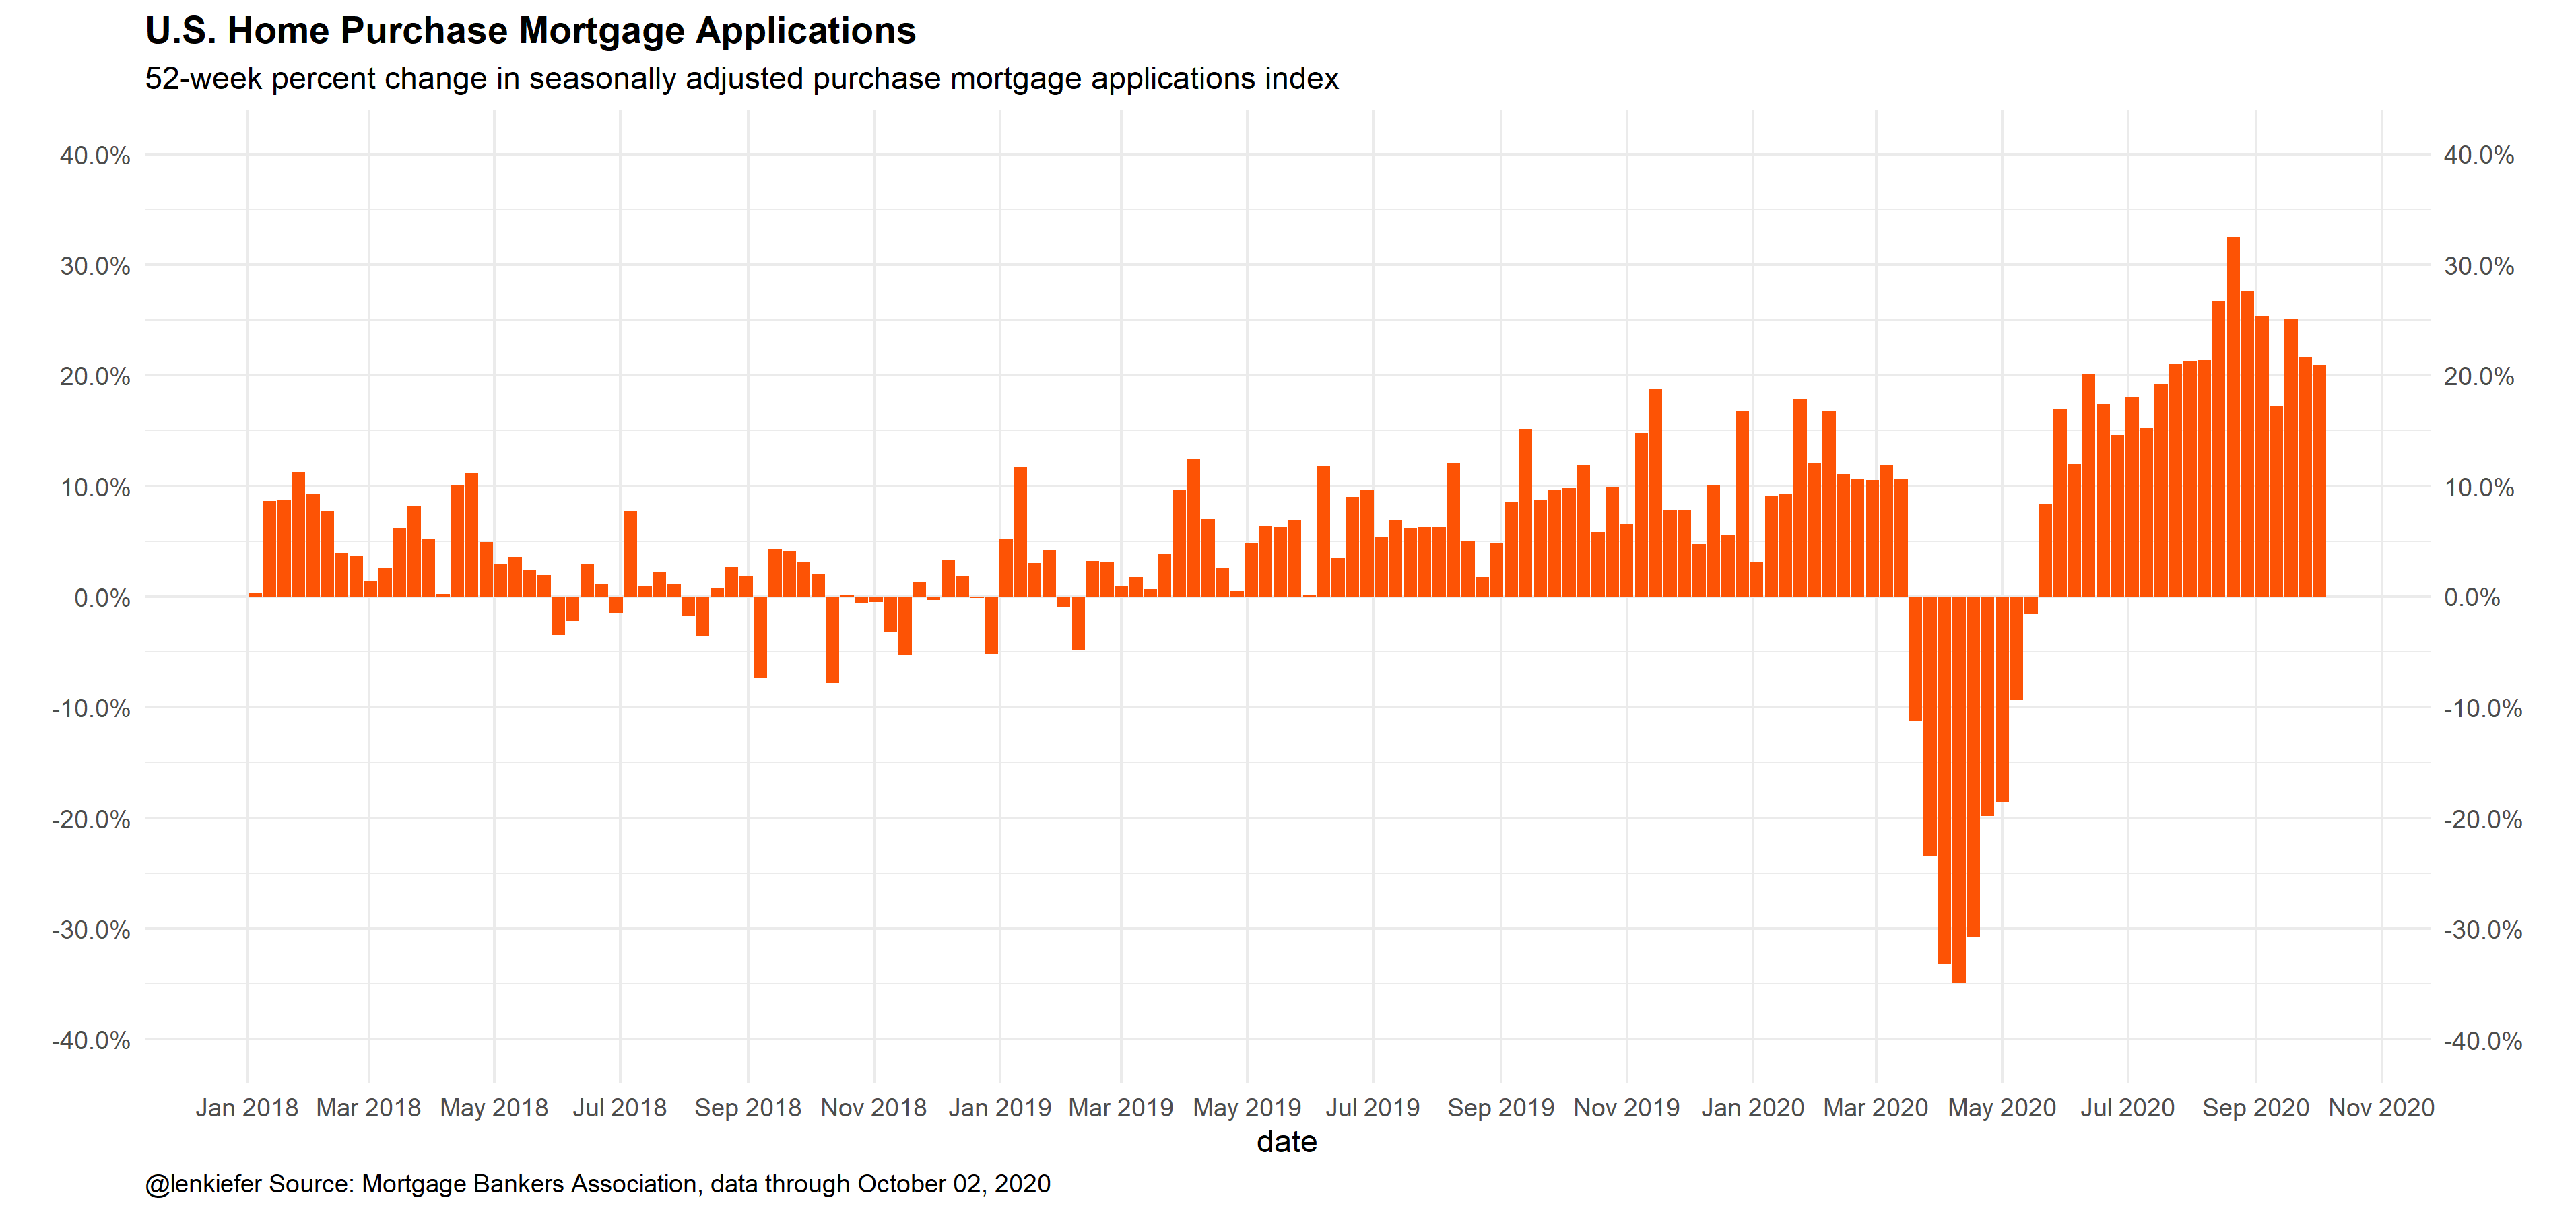 Mortgage applications remain up by 20% year-over-year.